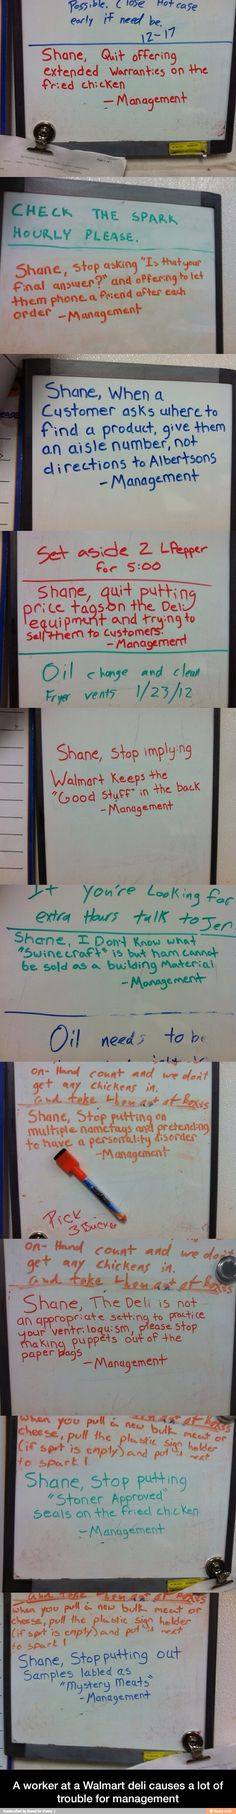 Some dude in the deli section at walmart causes management a LOT of trouble...